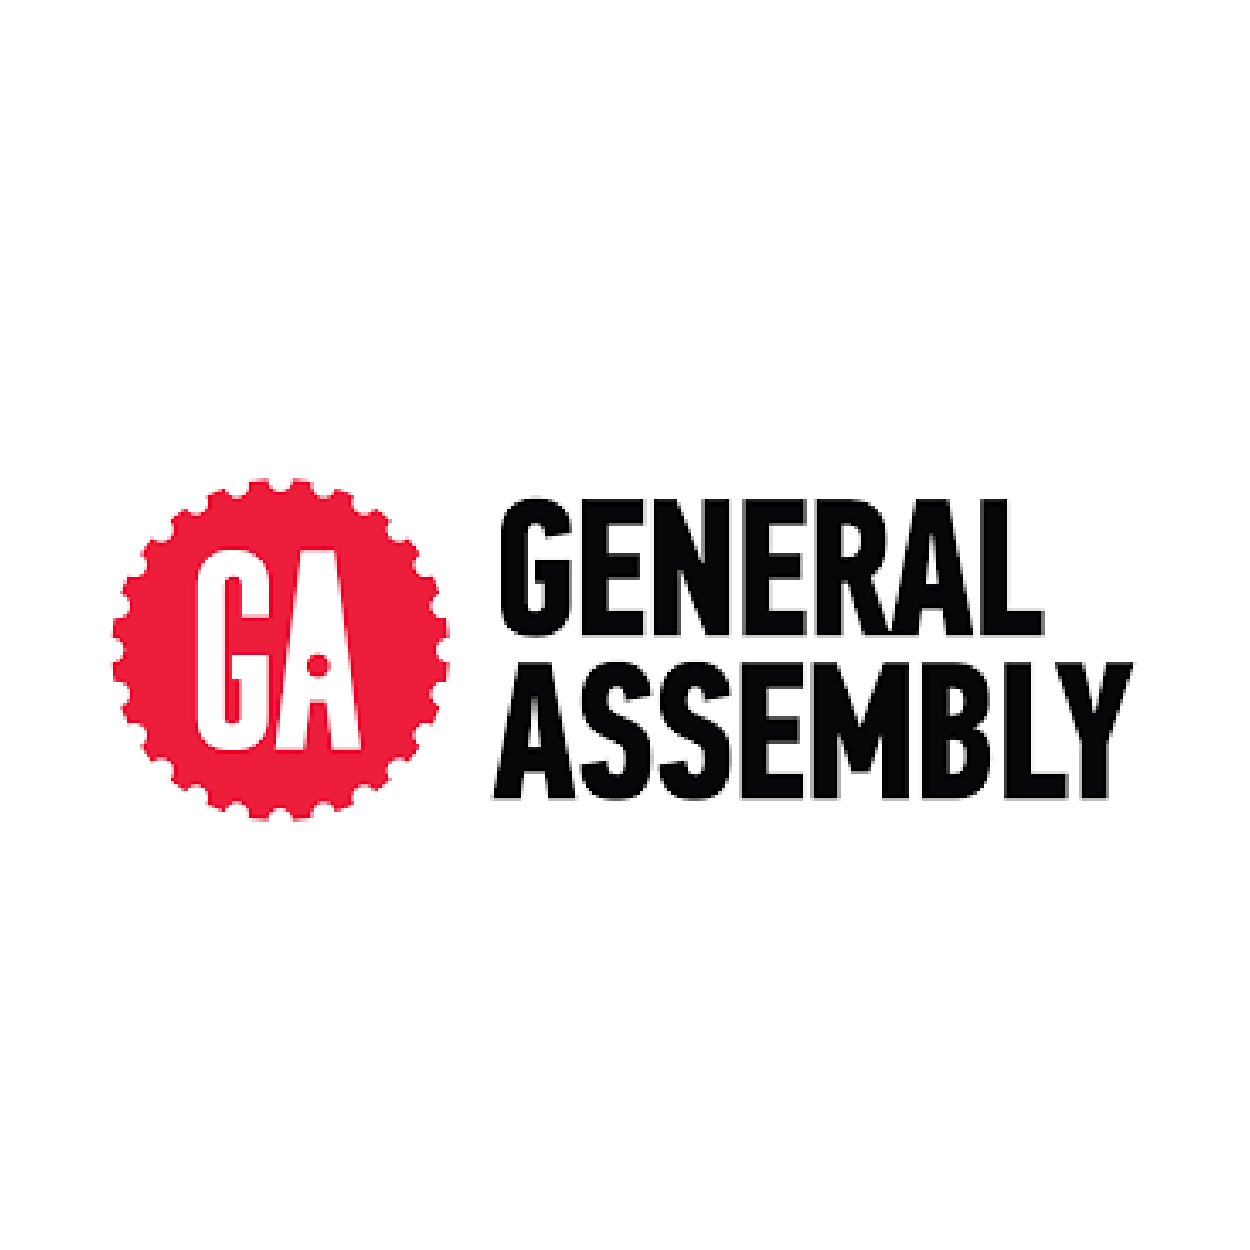 general assembly-01.png